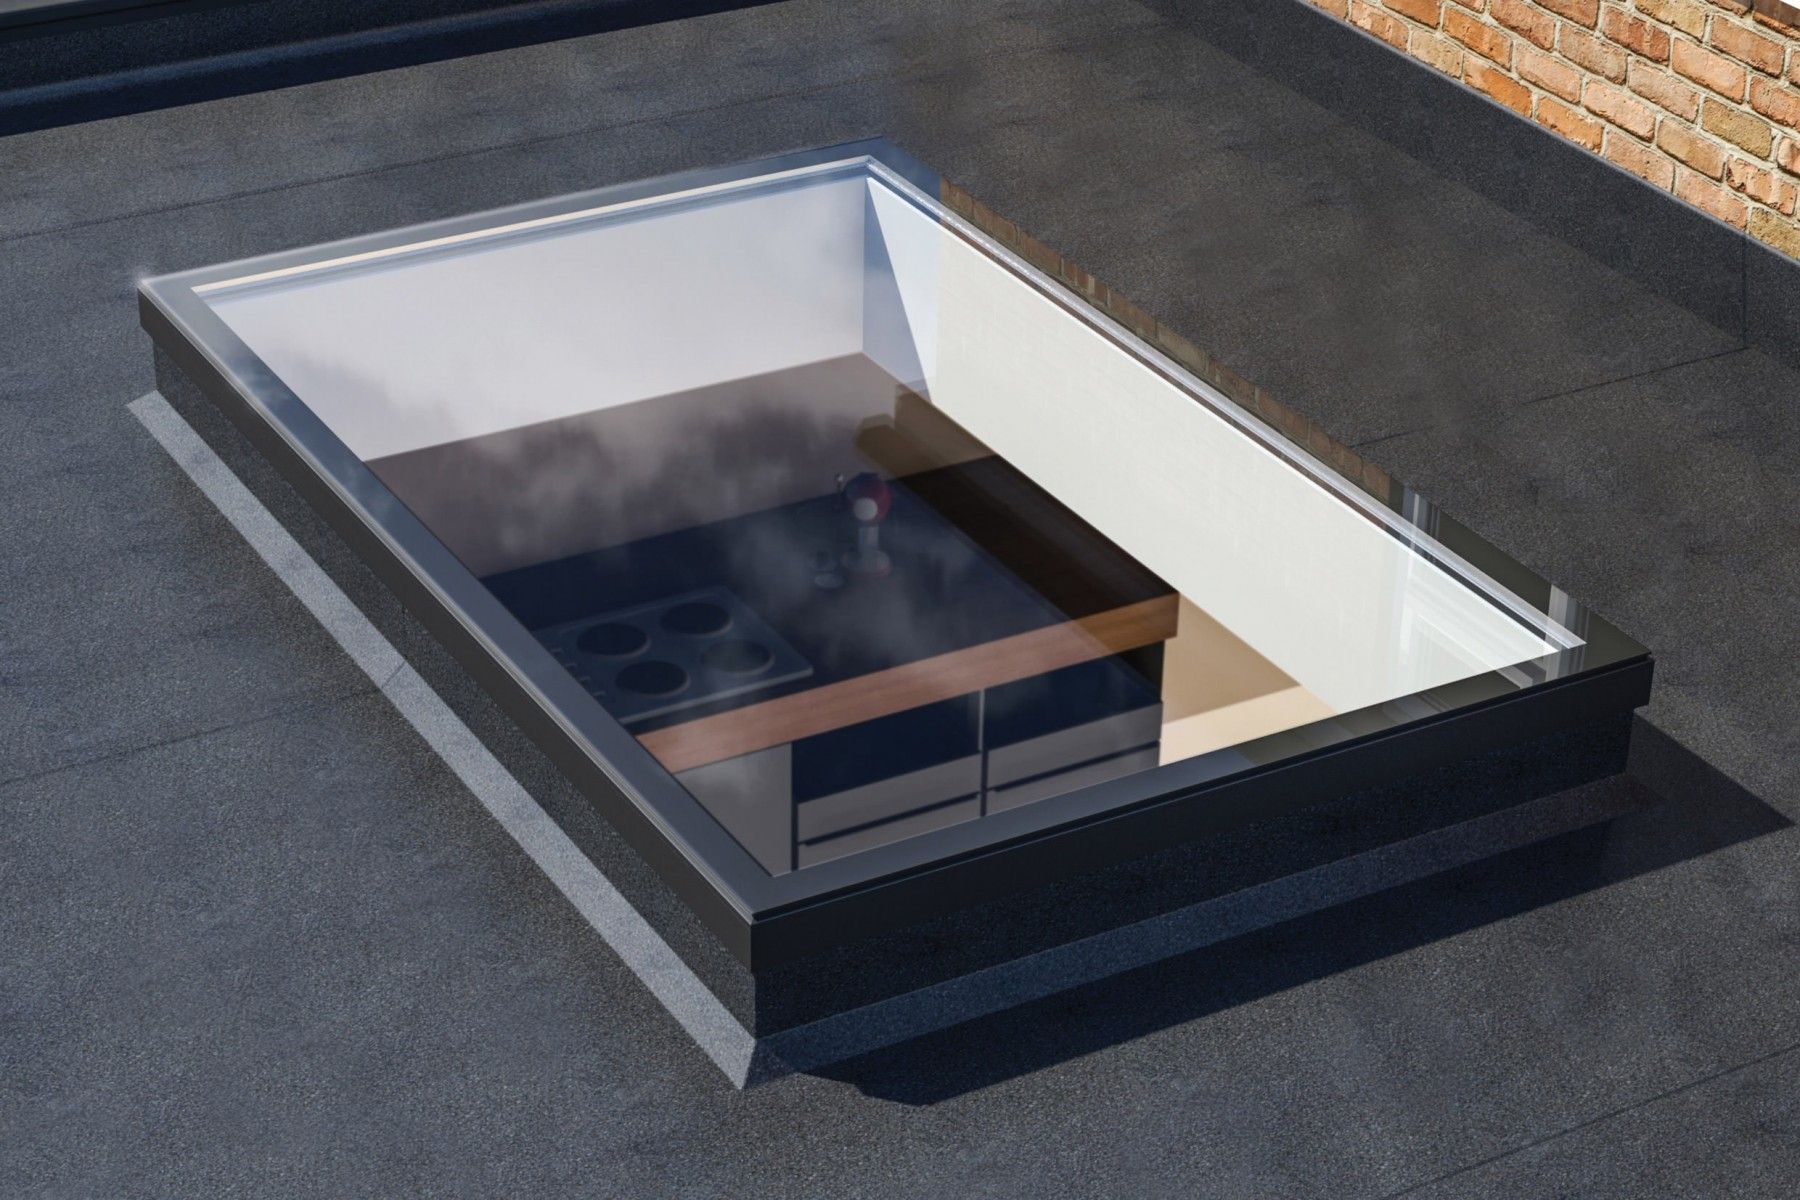 Sleek and practical roof replacements by Ultraframe Roof